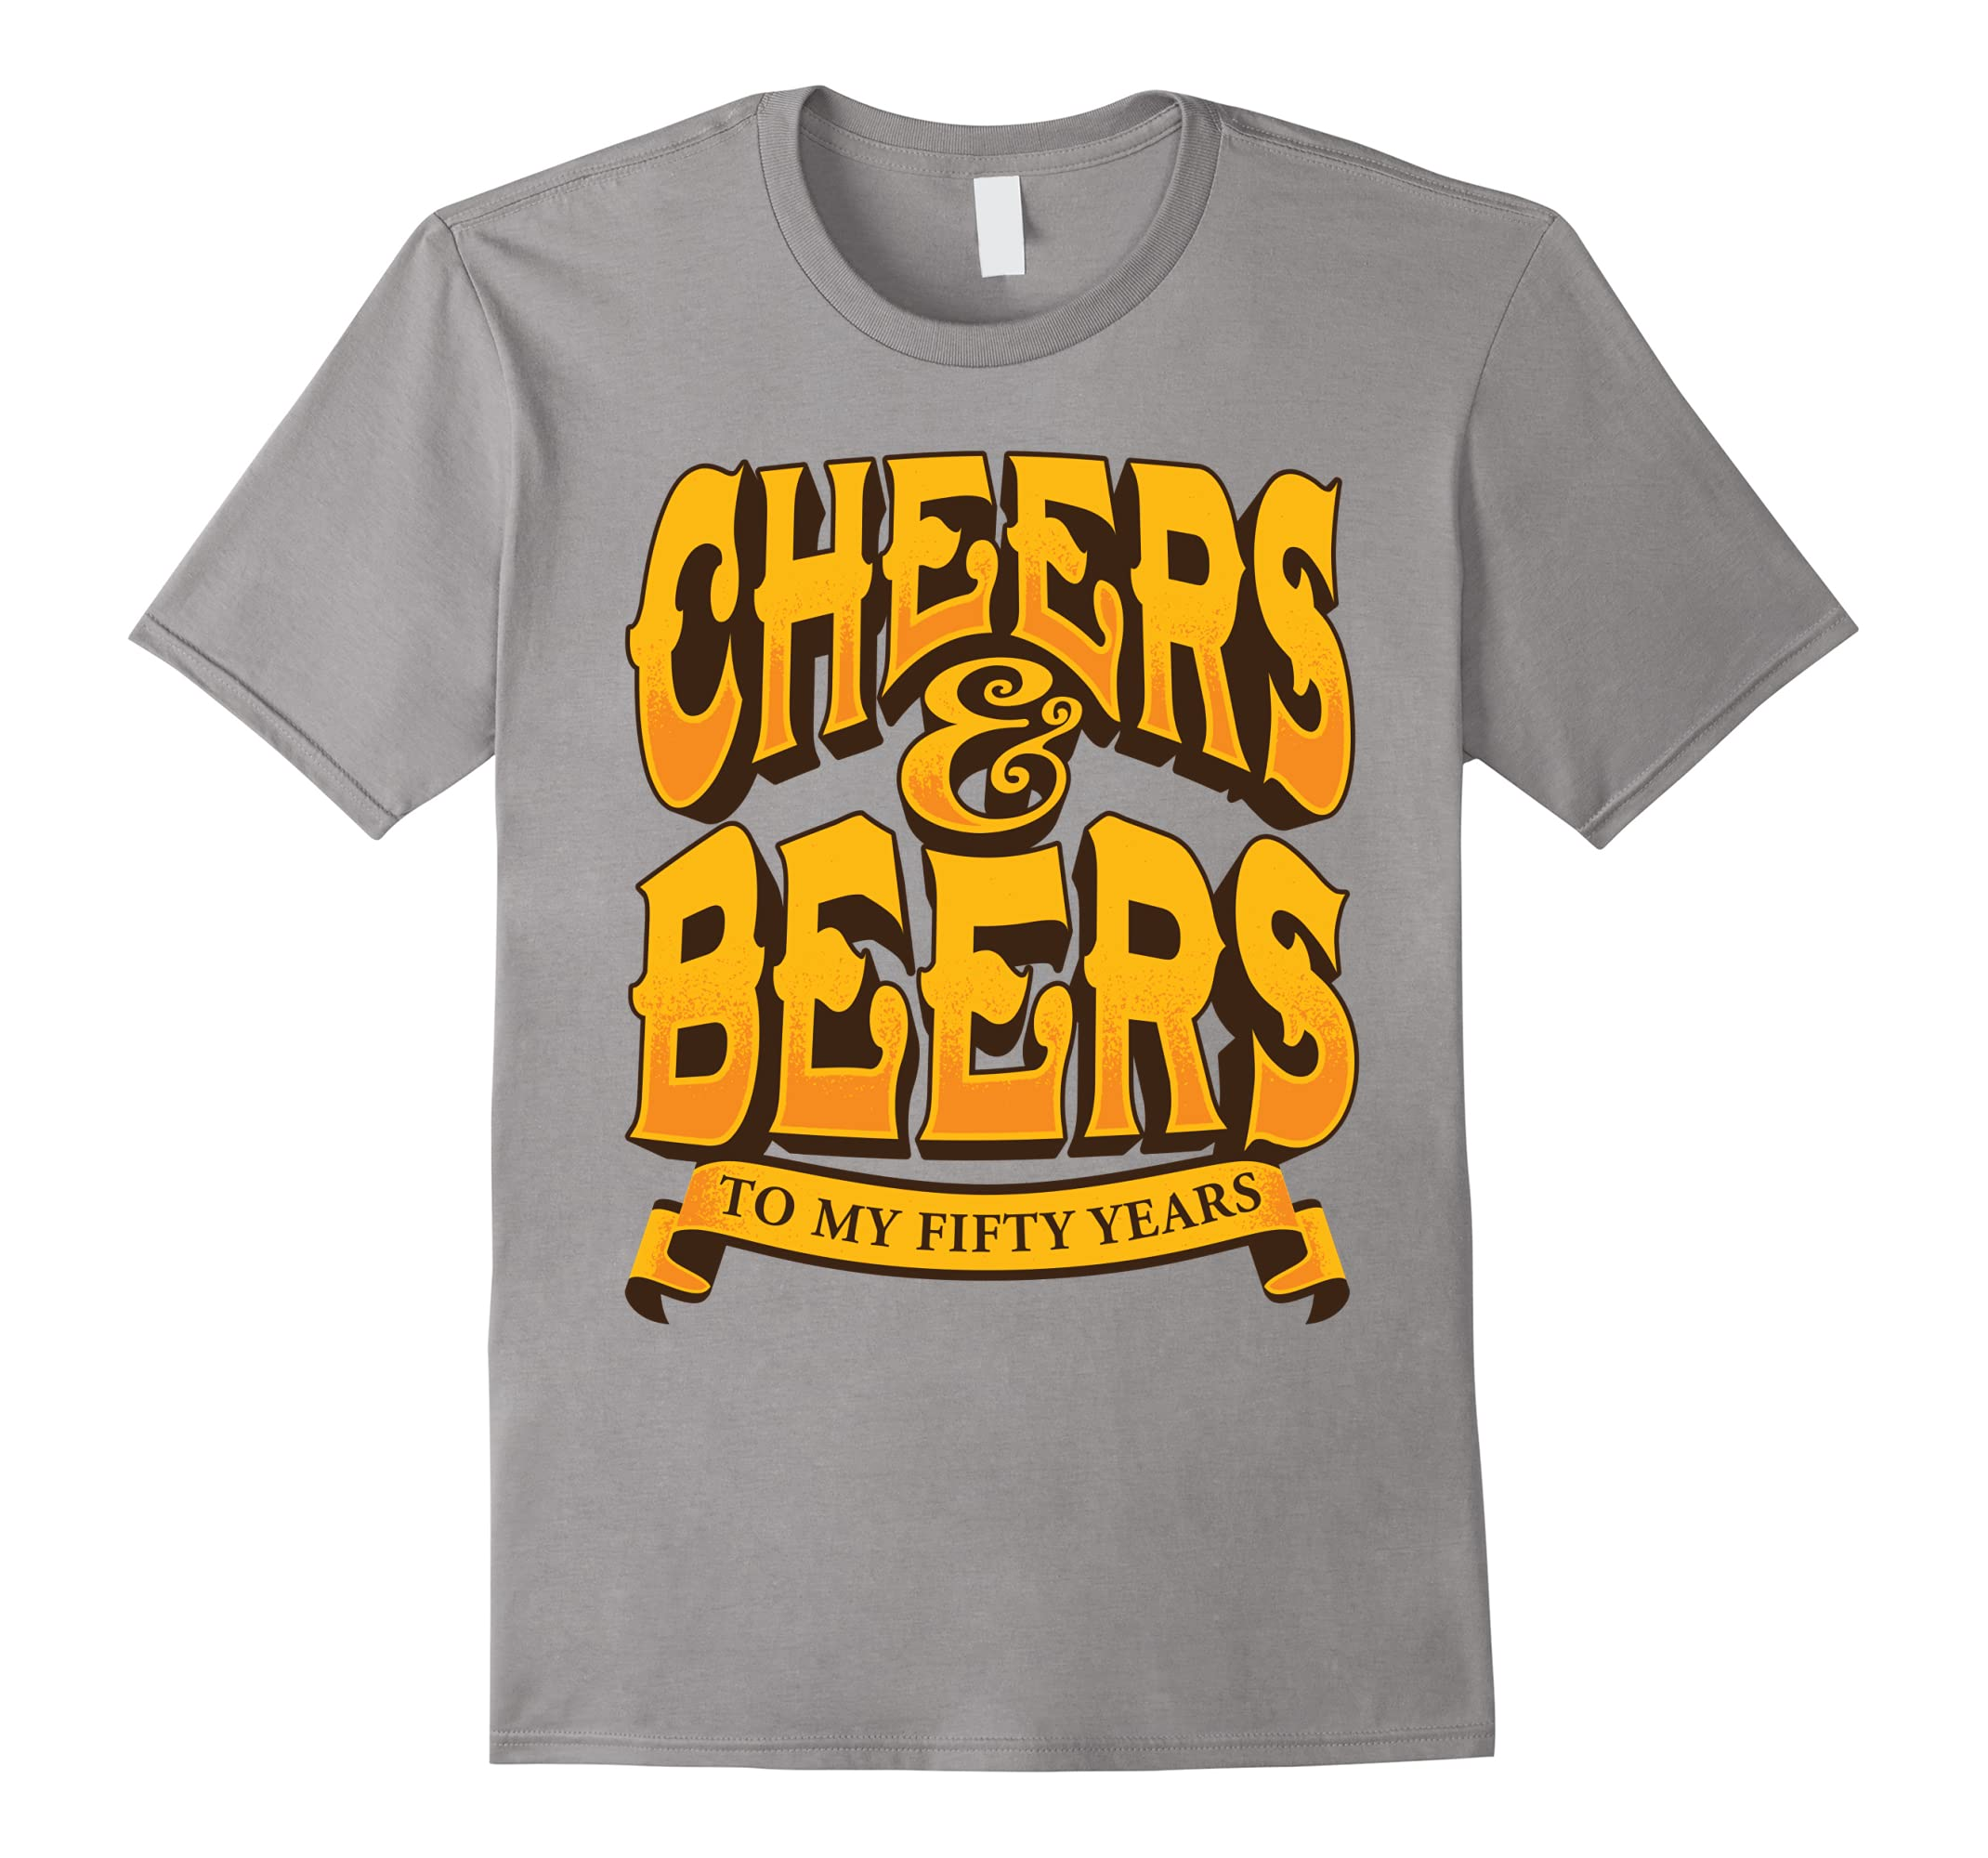 Cheers and Beers to Fifty Years - Mens 50th Birthday Tee-RT